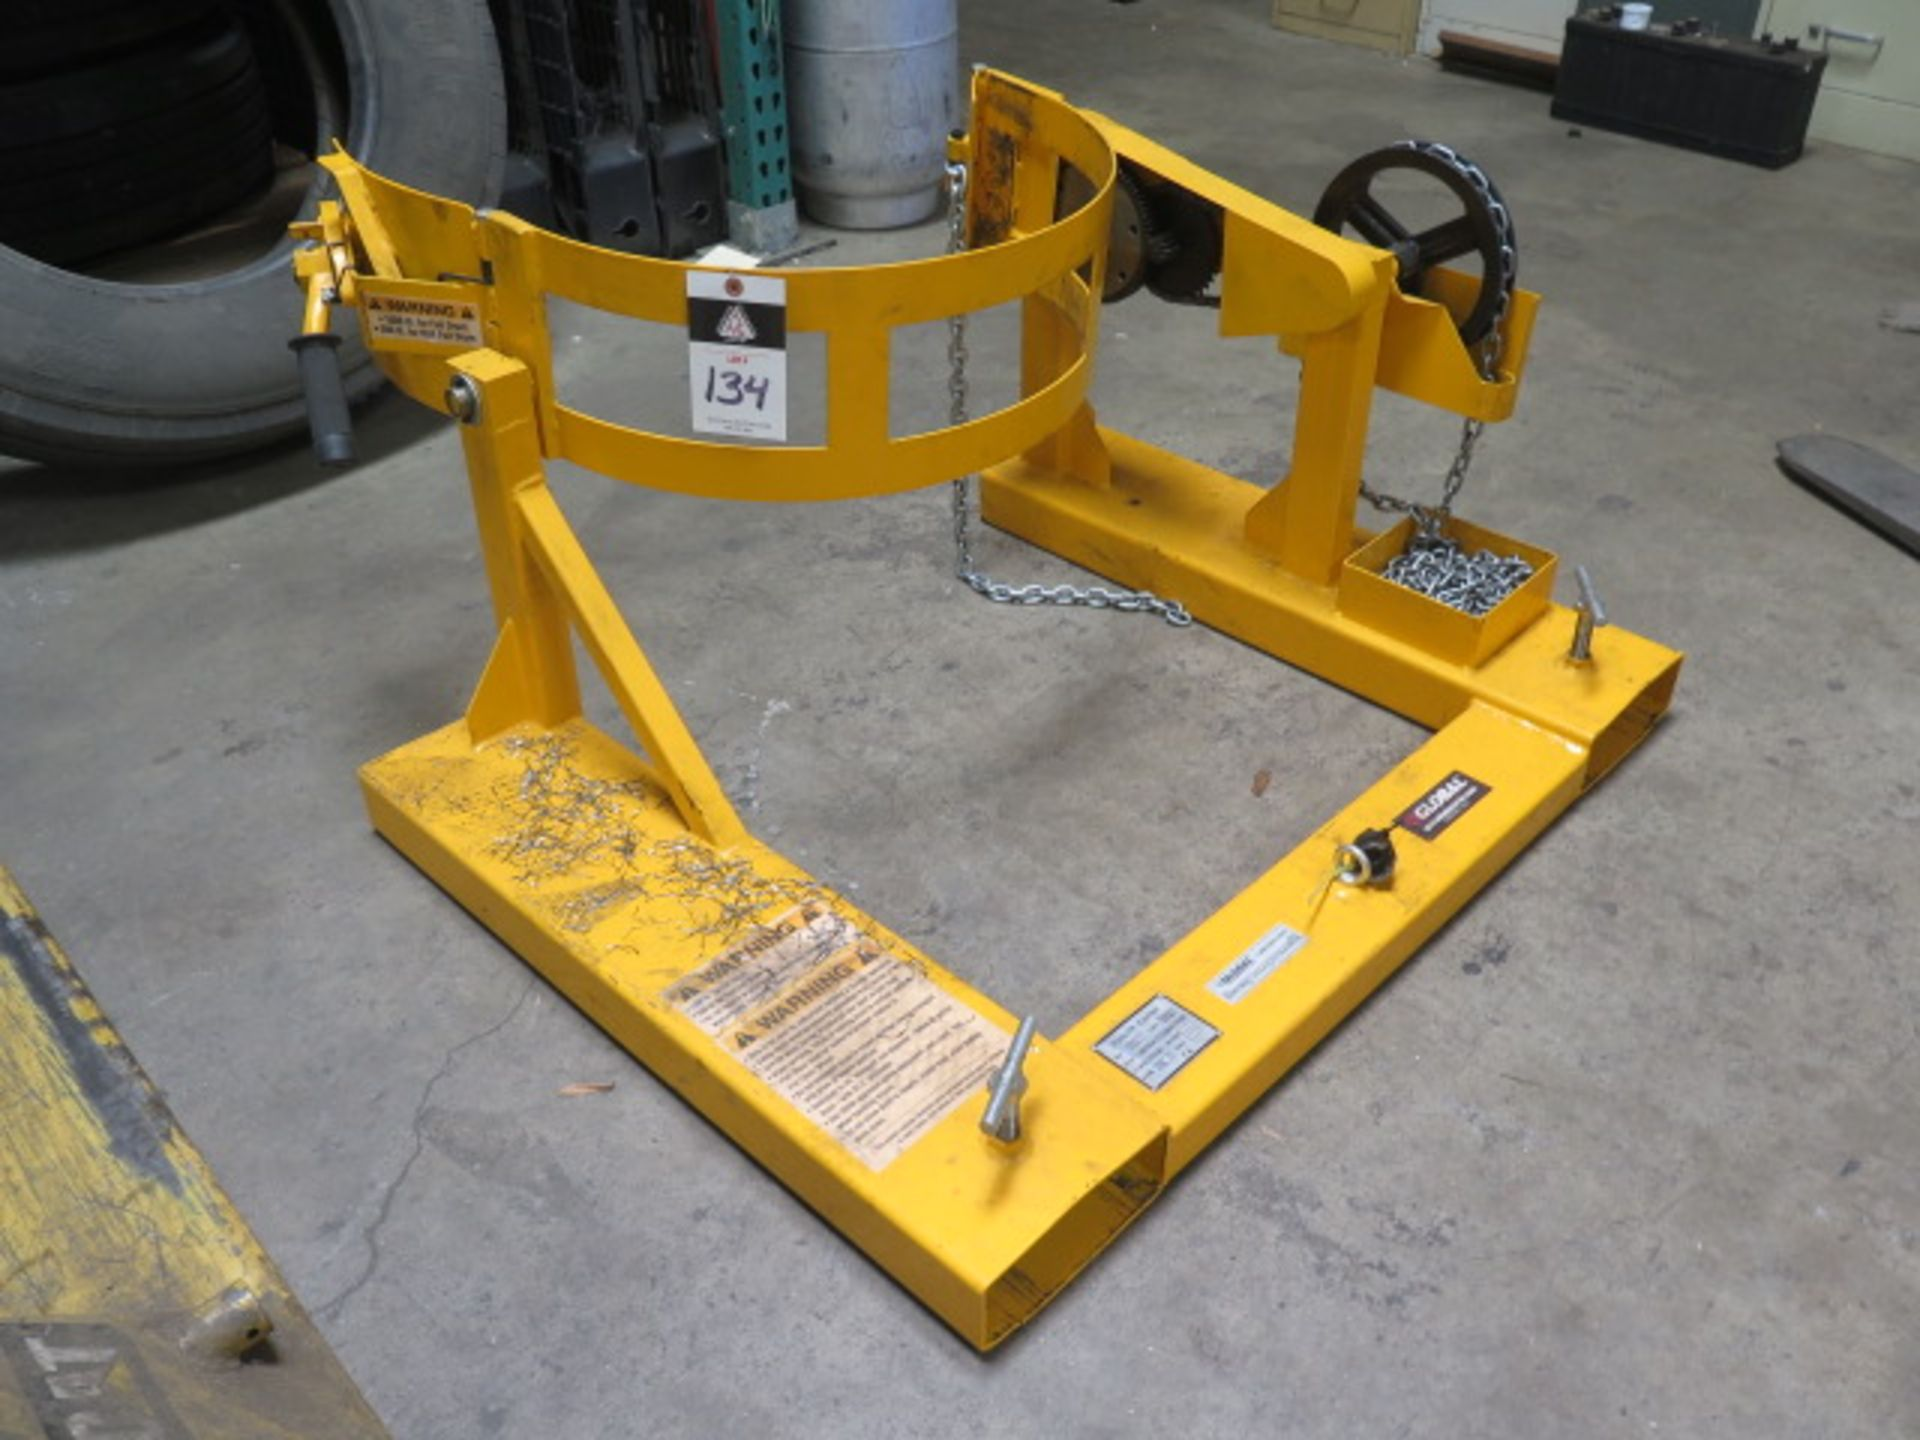 Global Barrel Turner Forklift Attachment (SOLD AS-IS - NO WARRANTY)